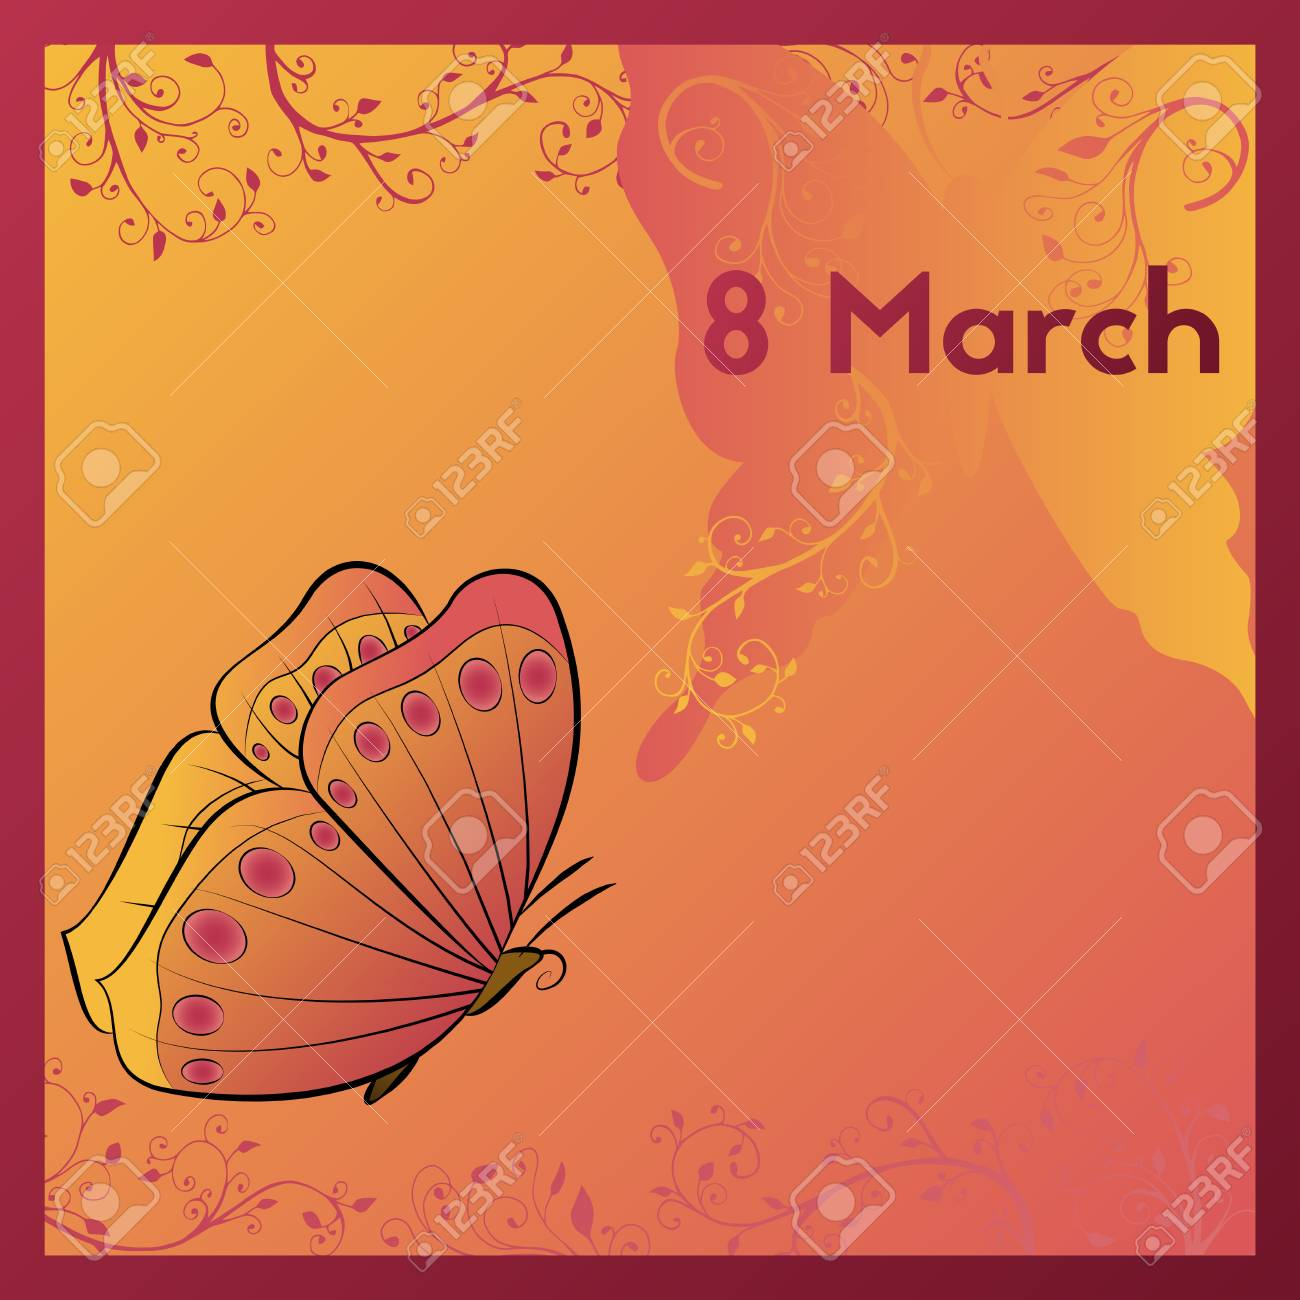 The Eighth Of March Greeting Card Template In Orange Colors